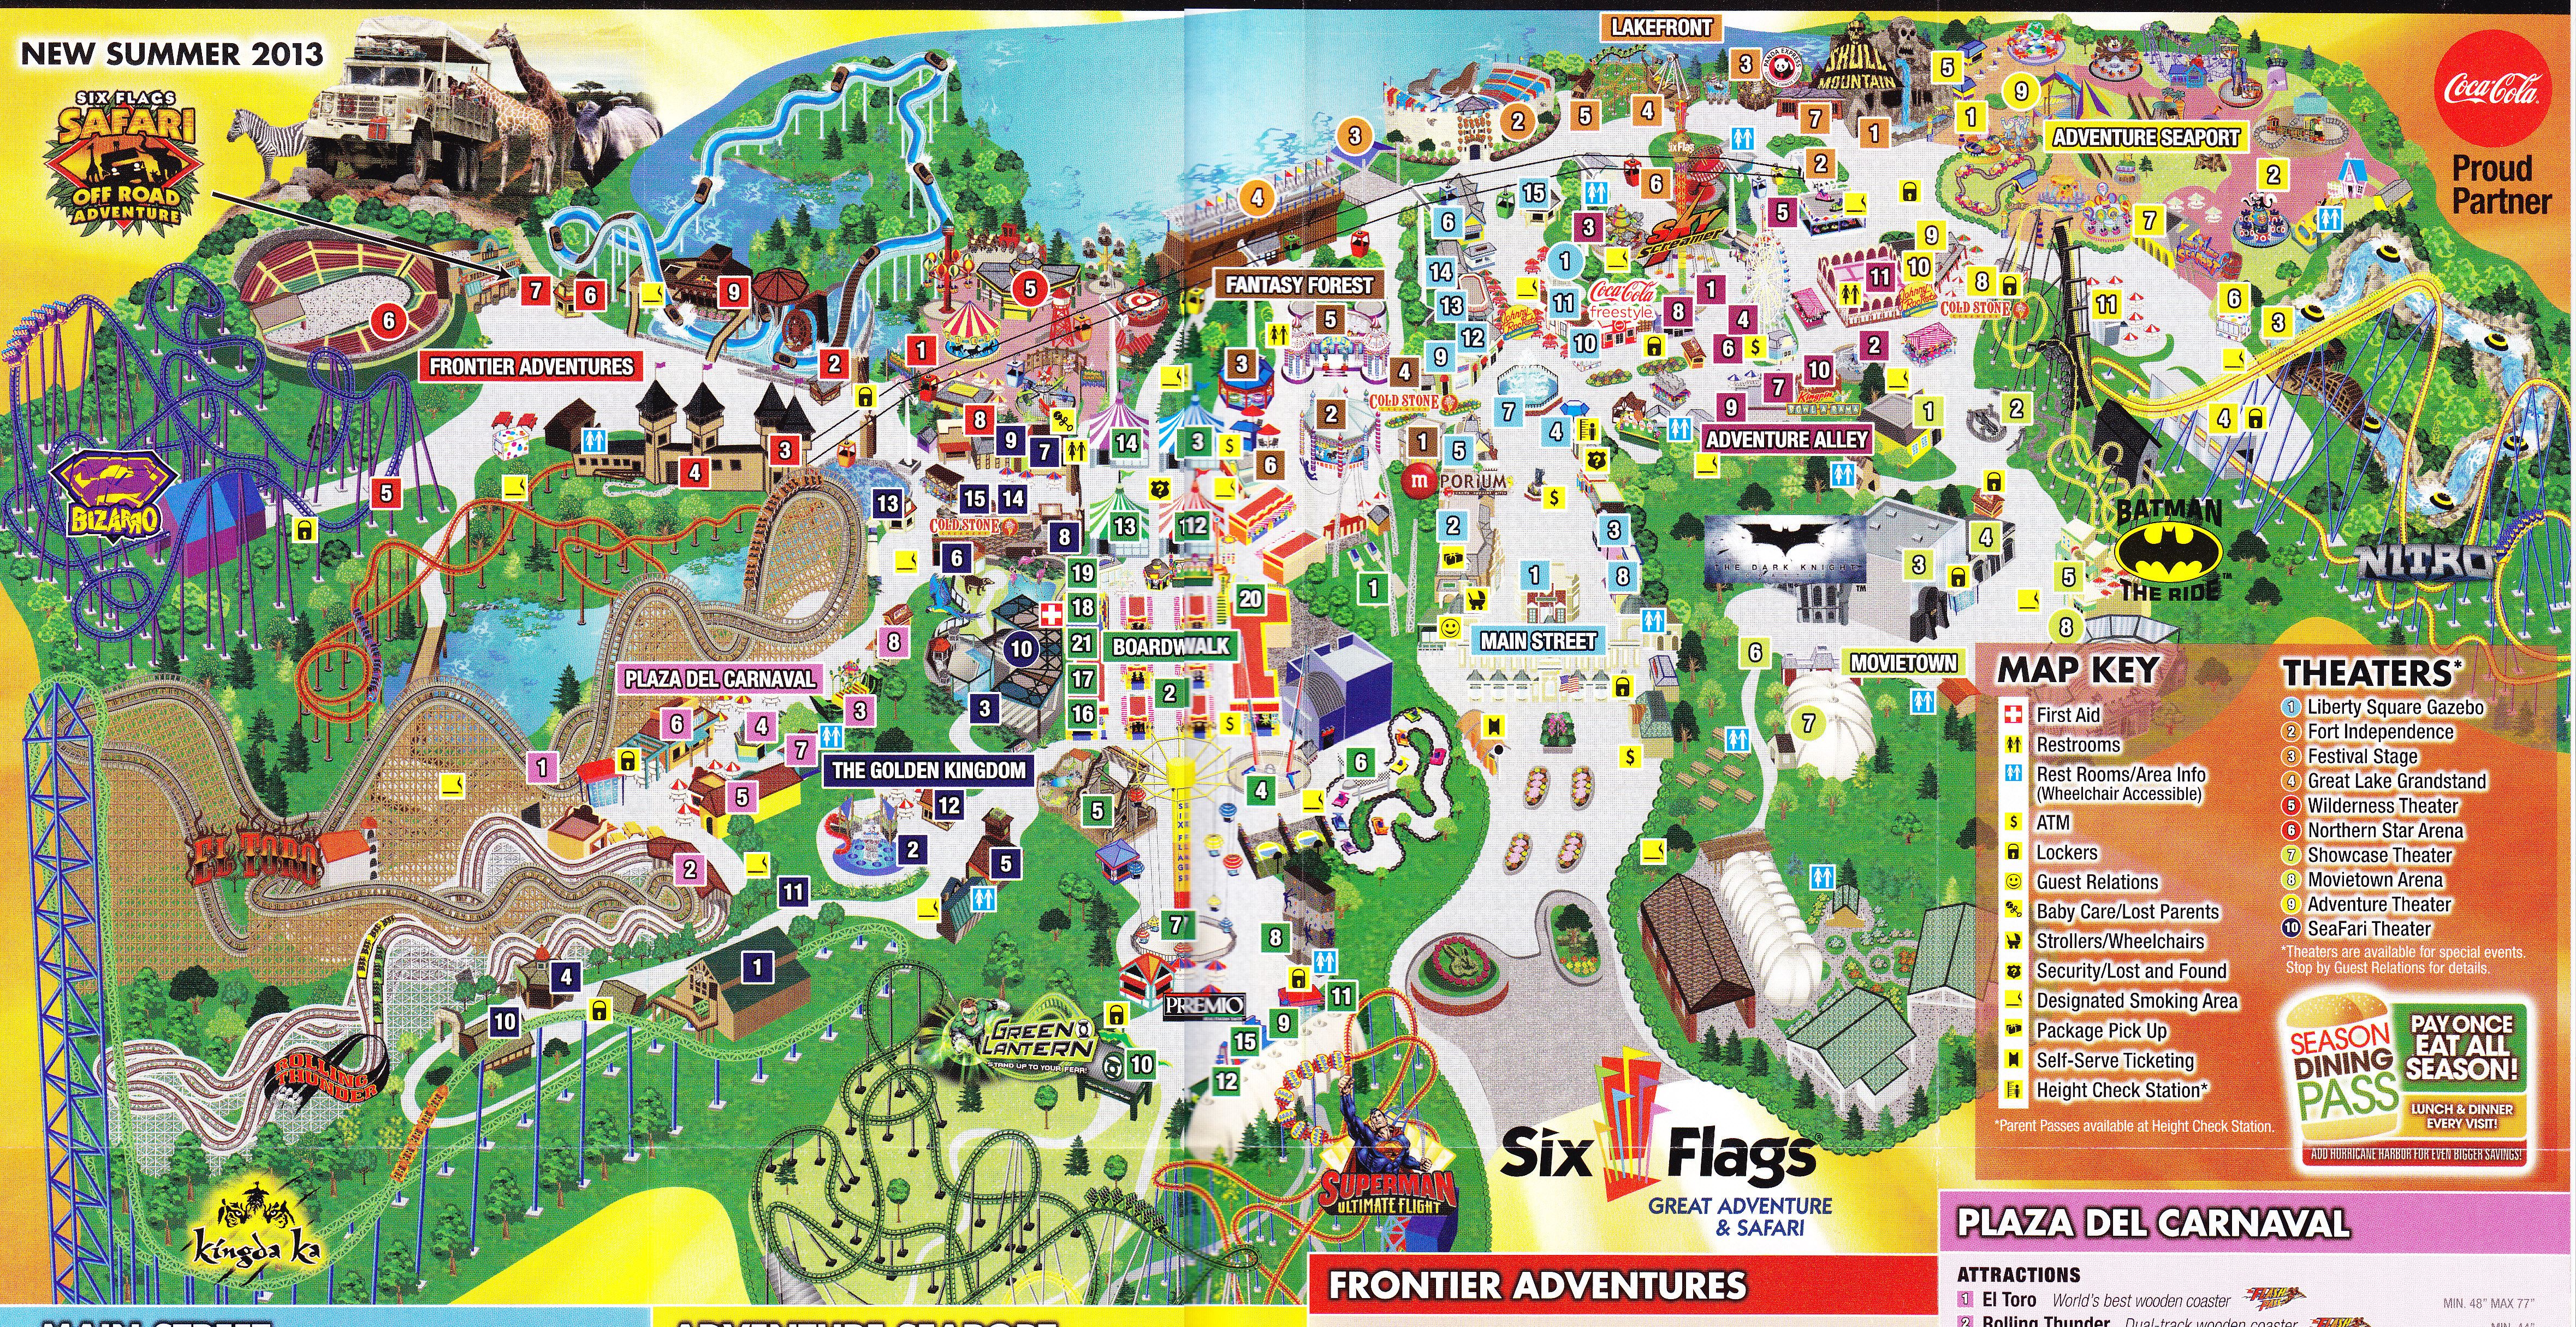 Six Flags Nj Map Six Flags Great Adventure   2013 Park Map